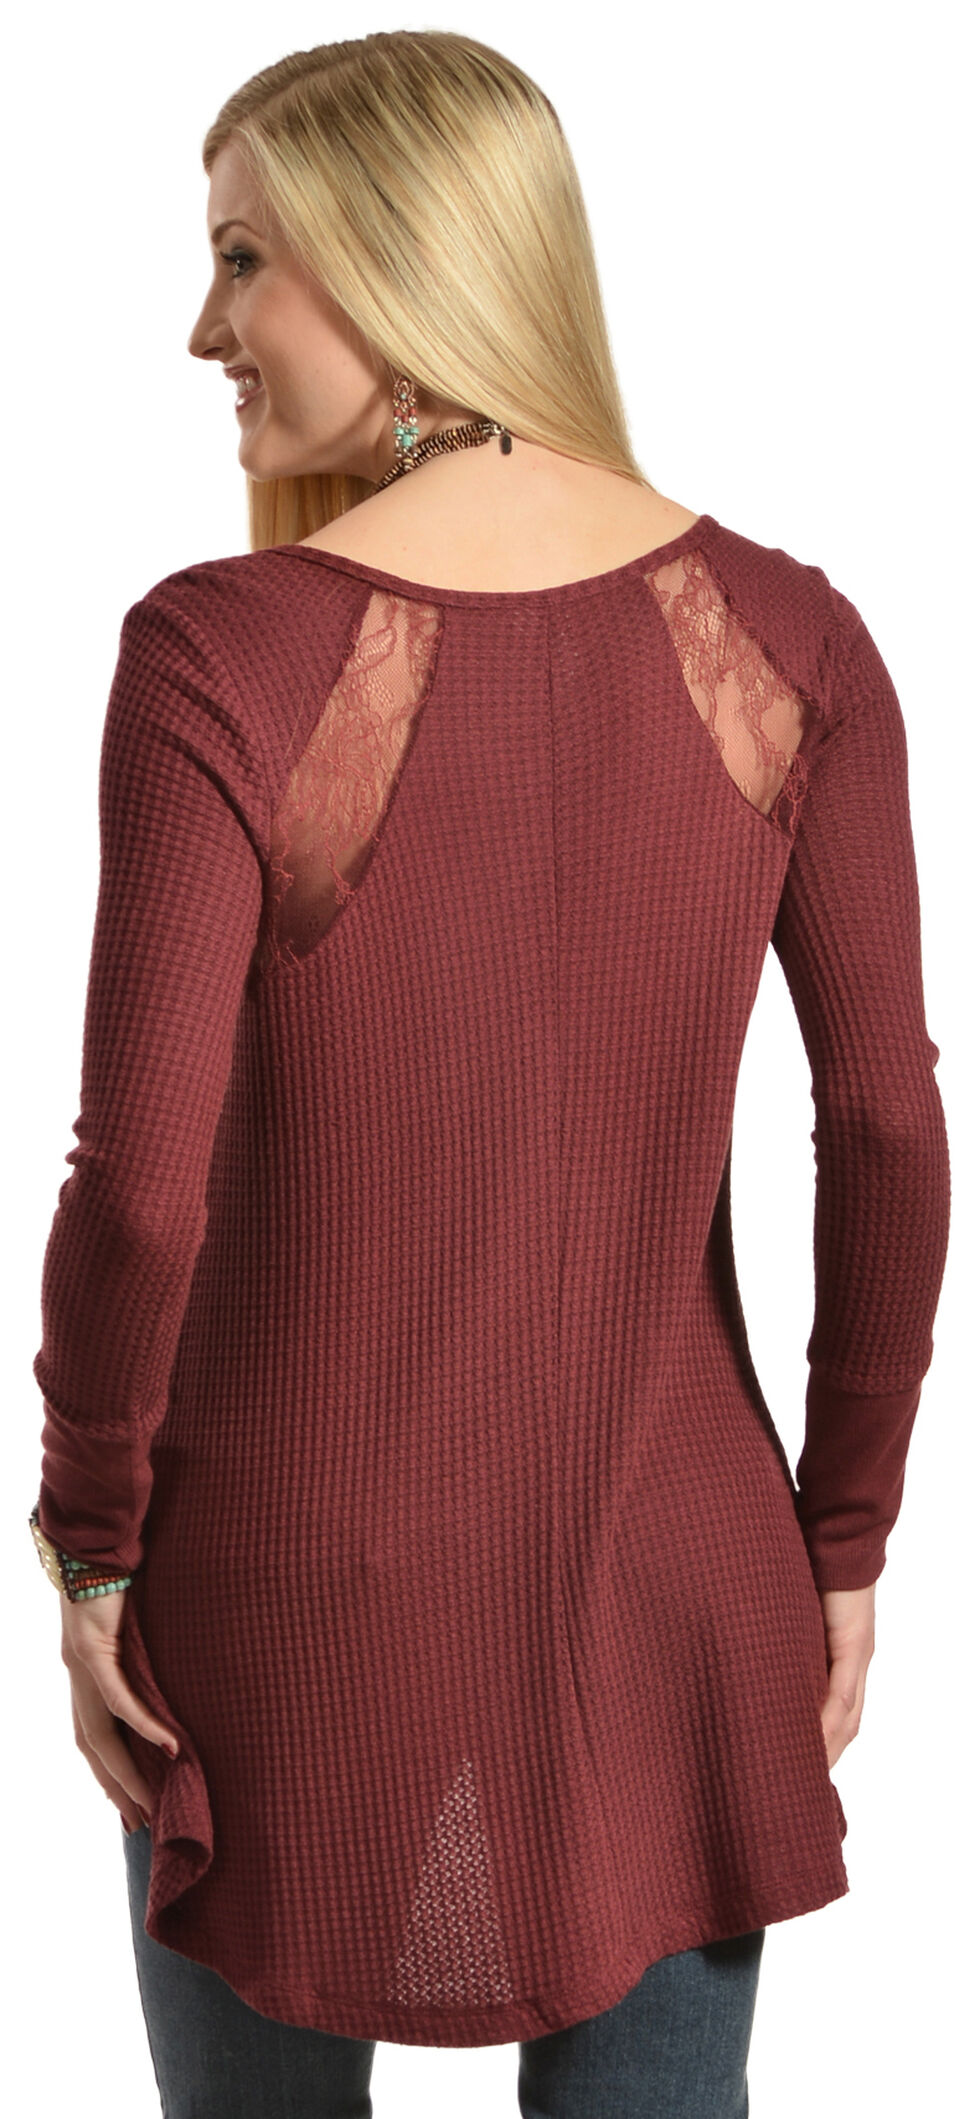 Others Follow Women's Waffle Lace Top, Dark Red, hi-res